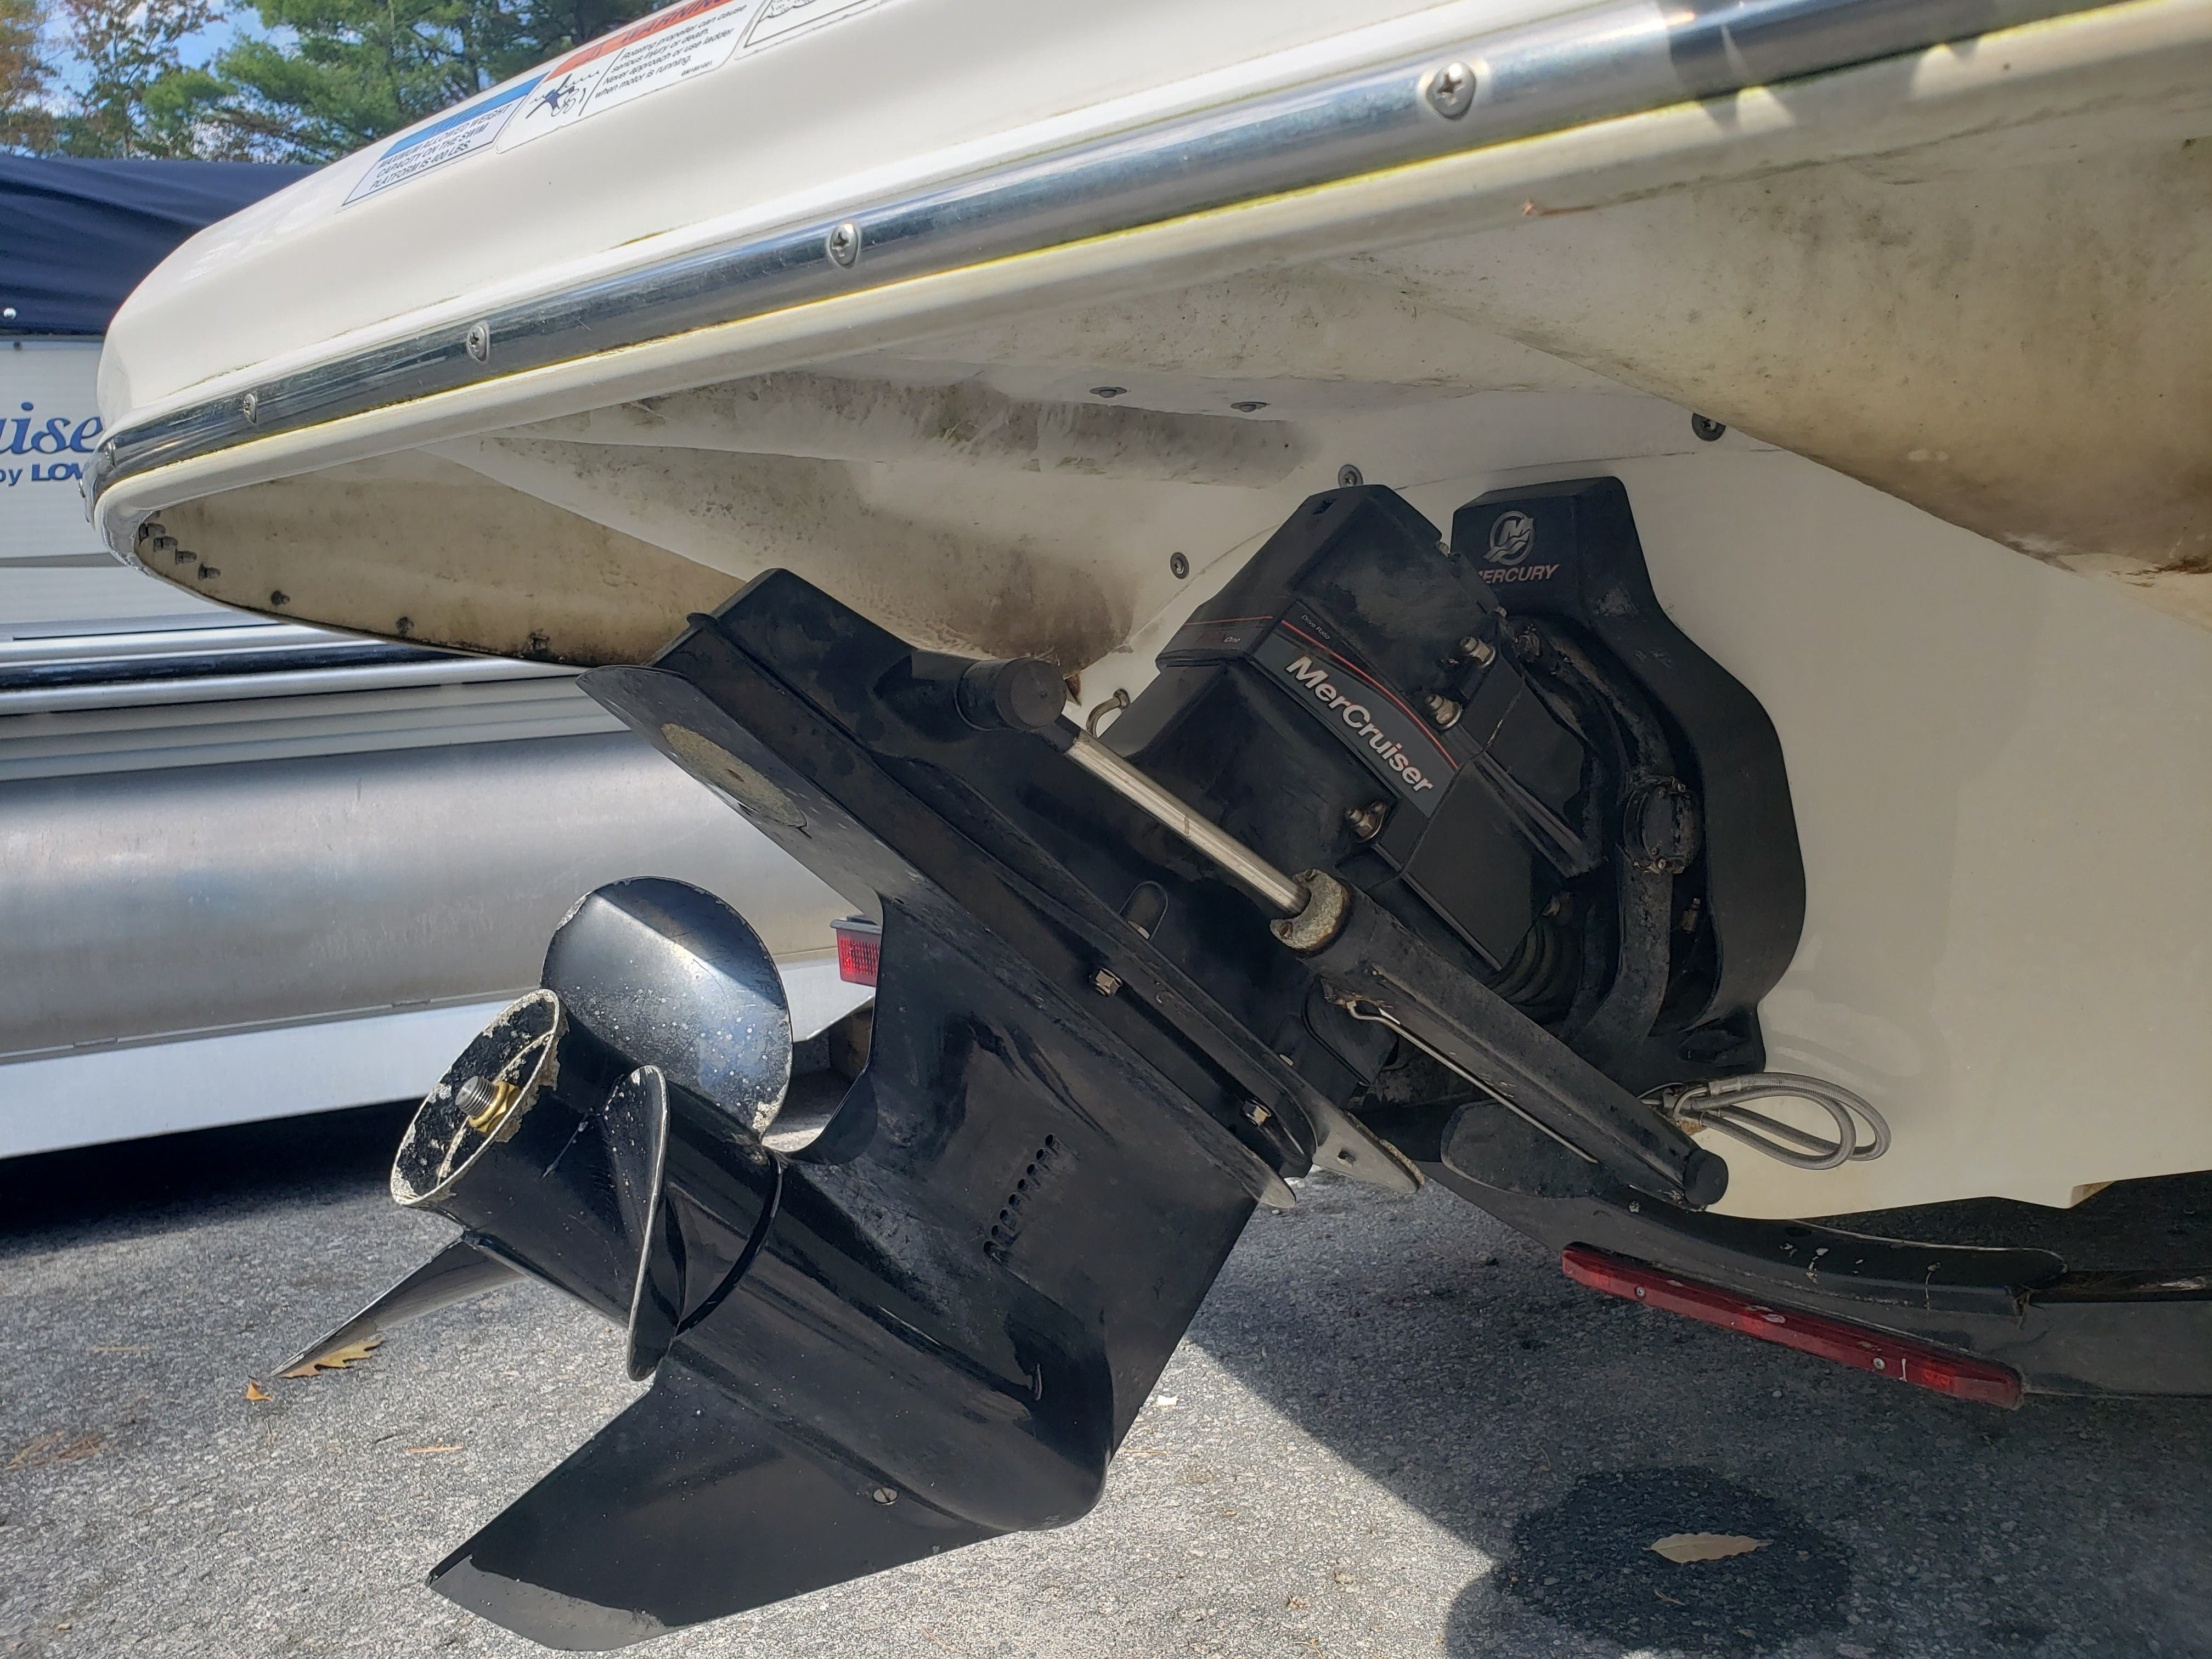 2014 Larson boat for sale, model of the boat is LX 195 S & Image # 10 of 10